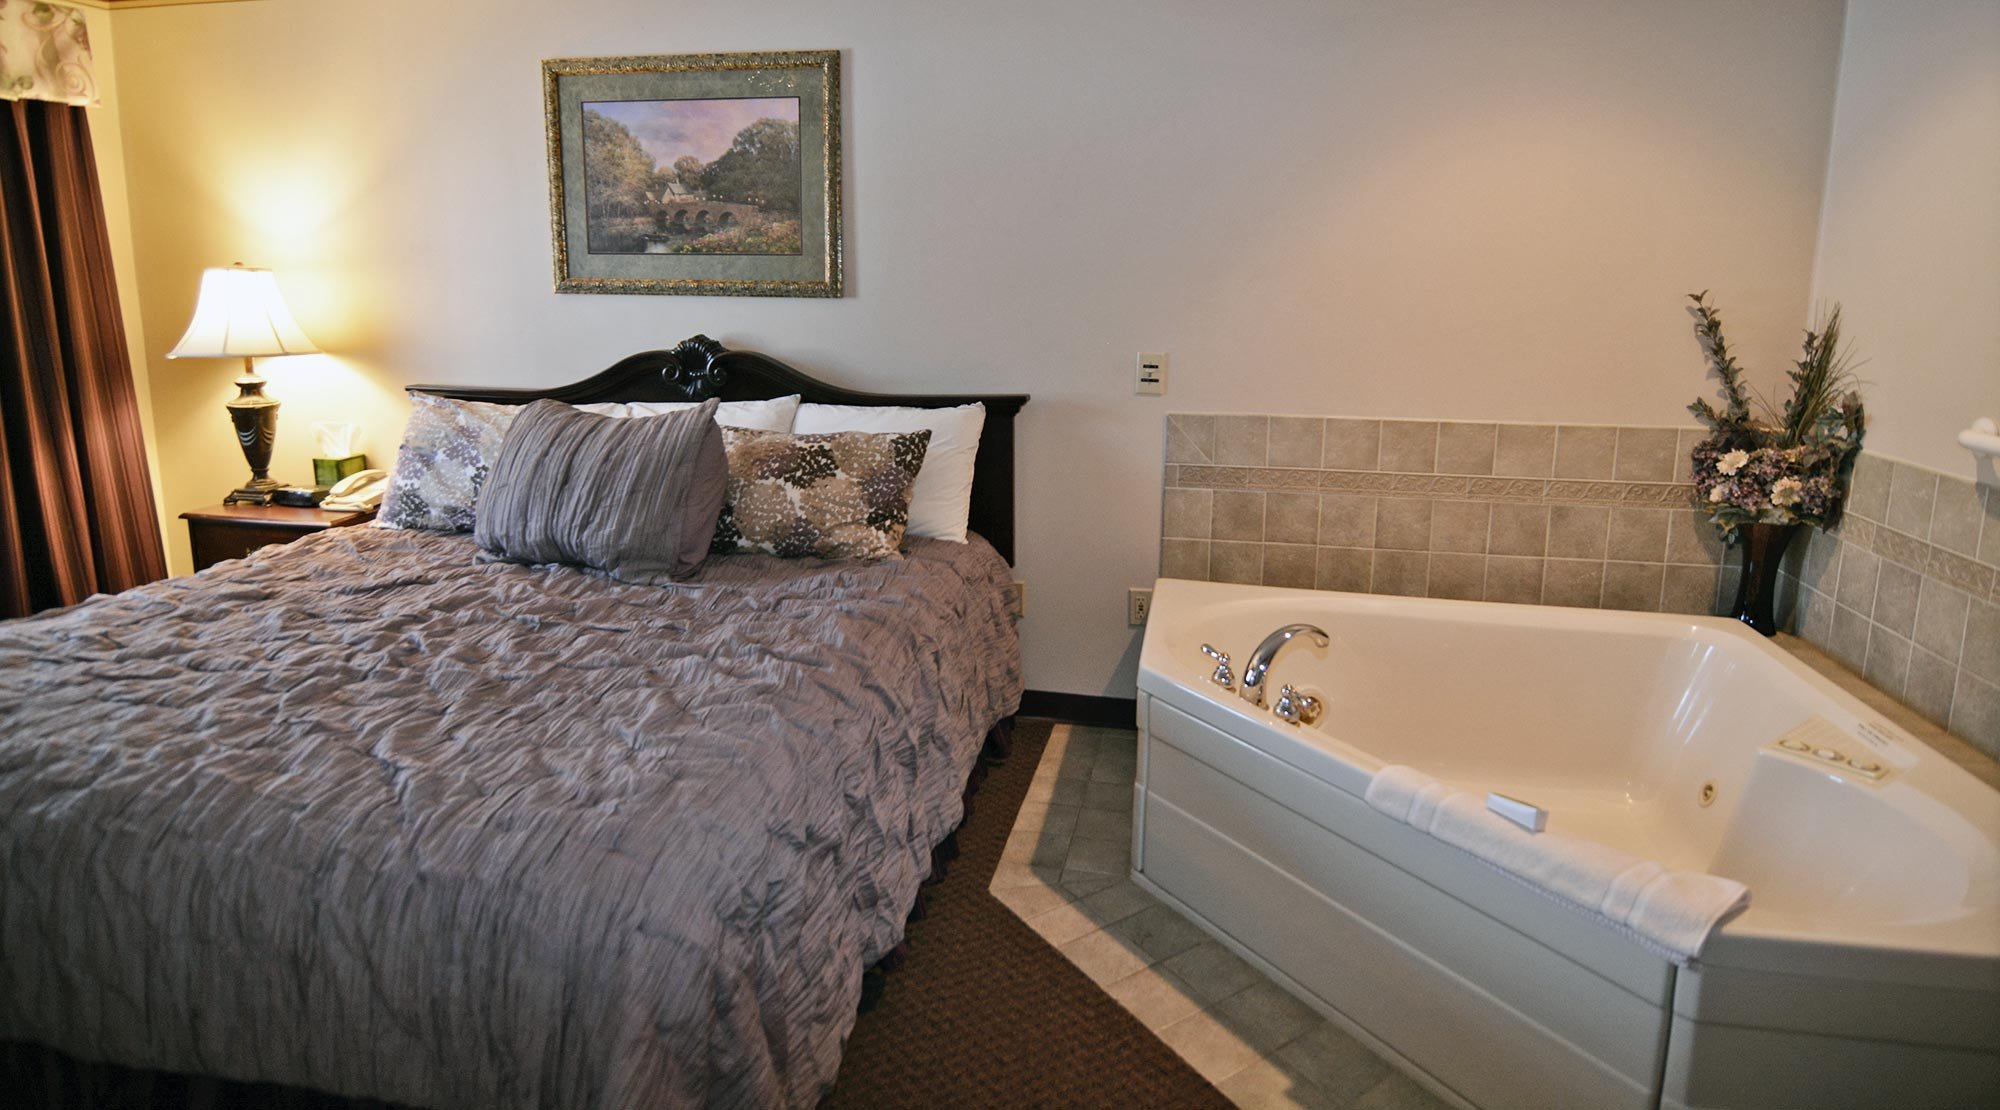 King Bed Near Jacuzzi® Tub